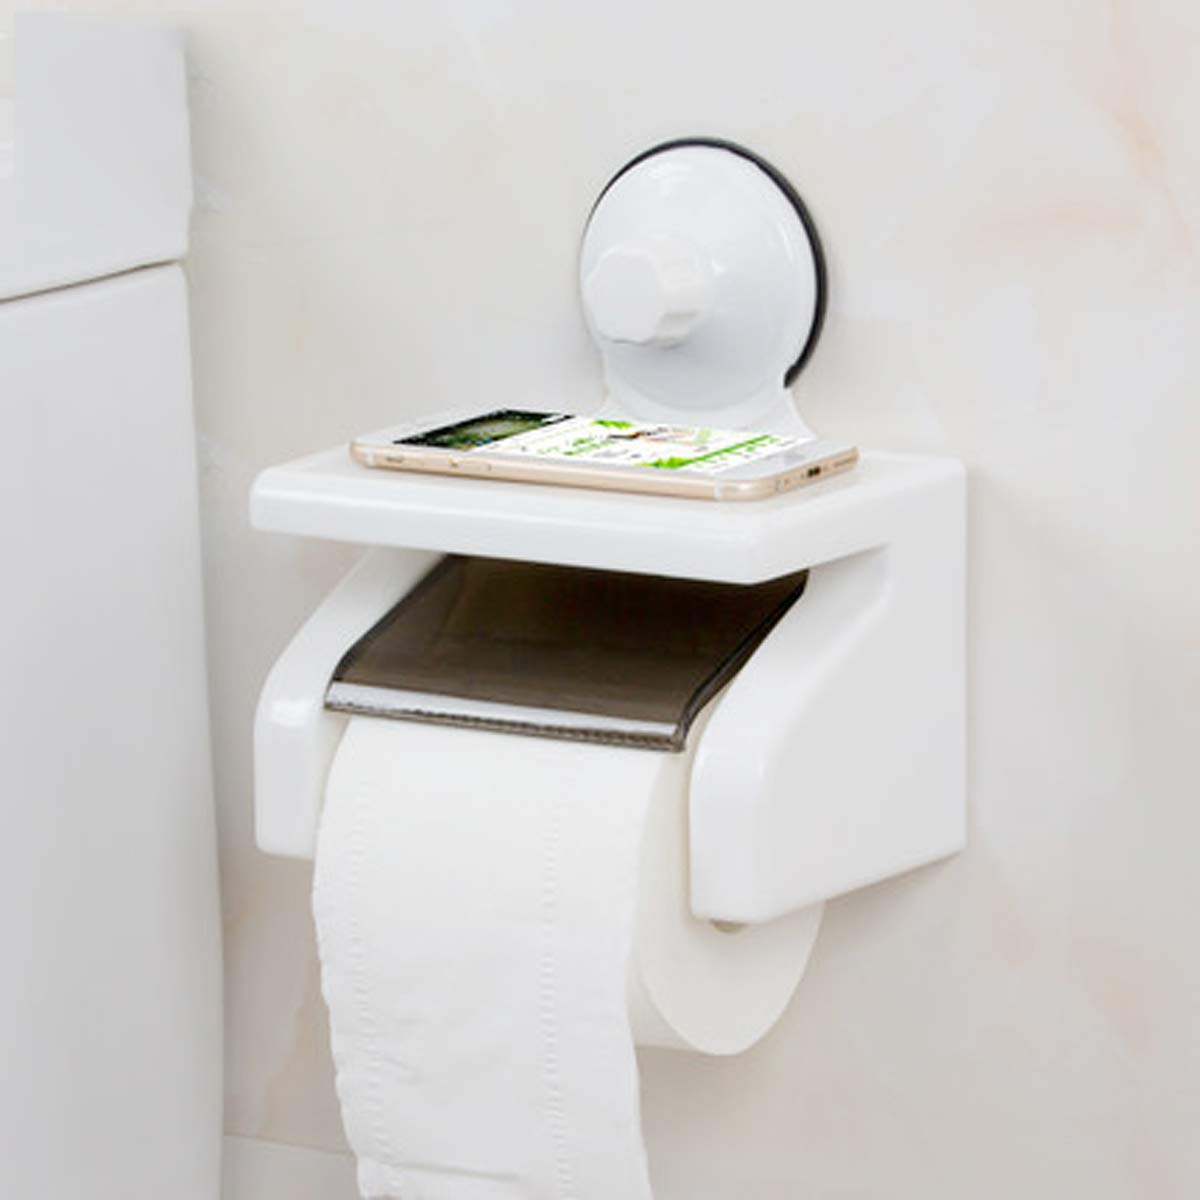 Q&F Wall Mount Toilet Paper Holder, Tissue Roll Hanger With Storage Shelf-waterproof, Moisture Proof-suction Cup,Plastic